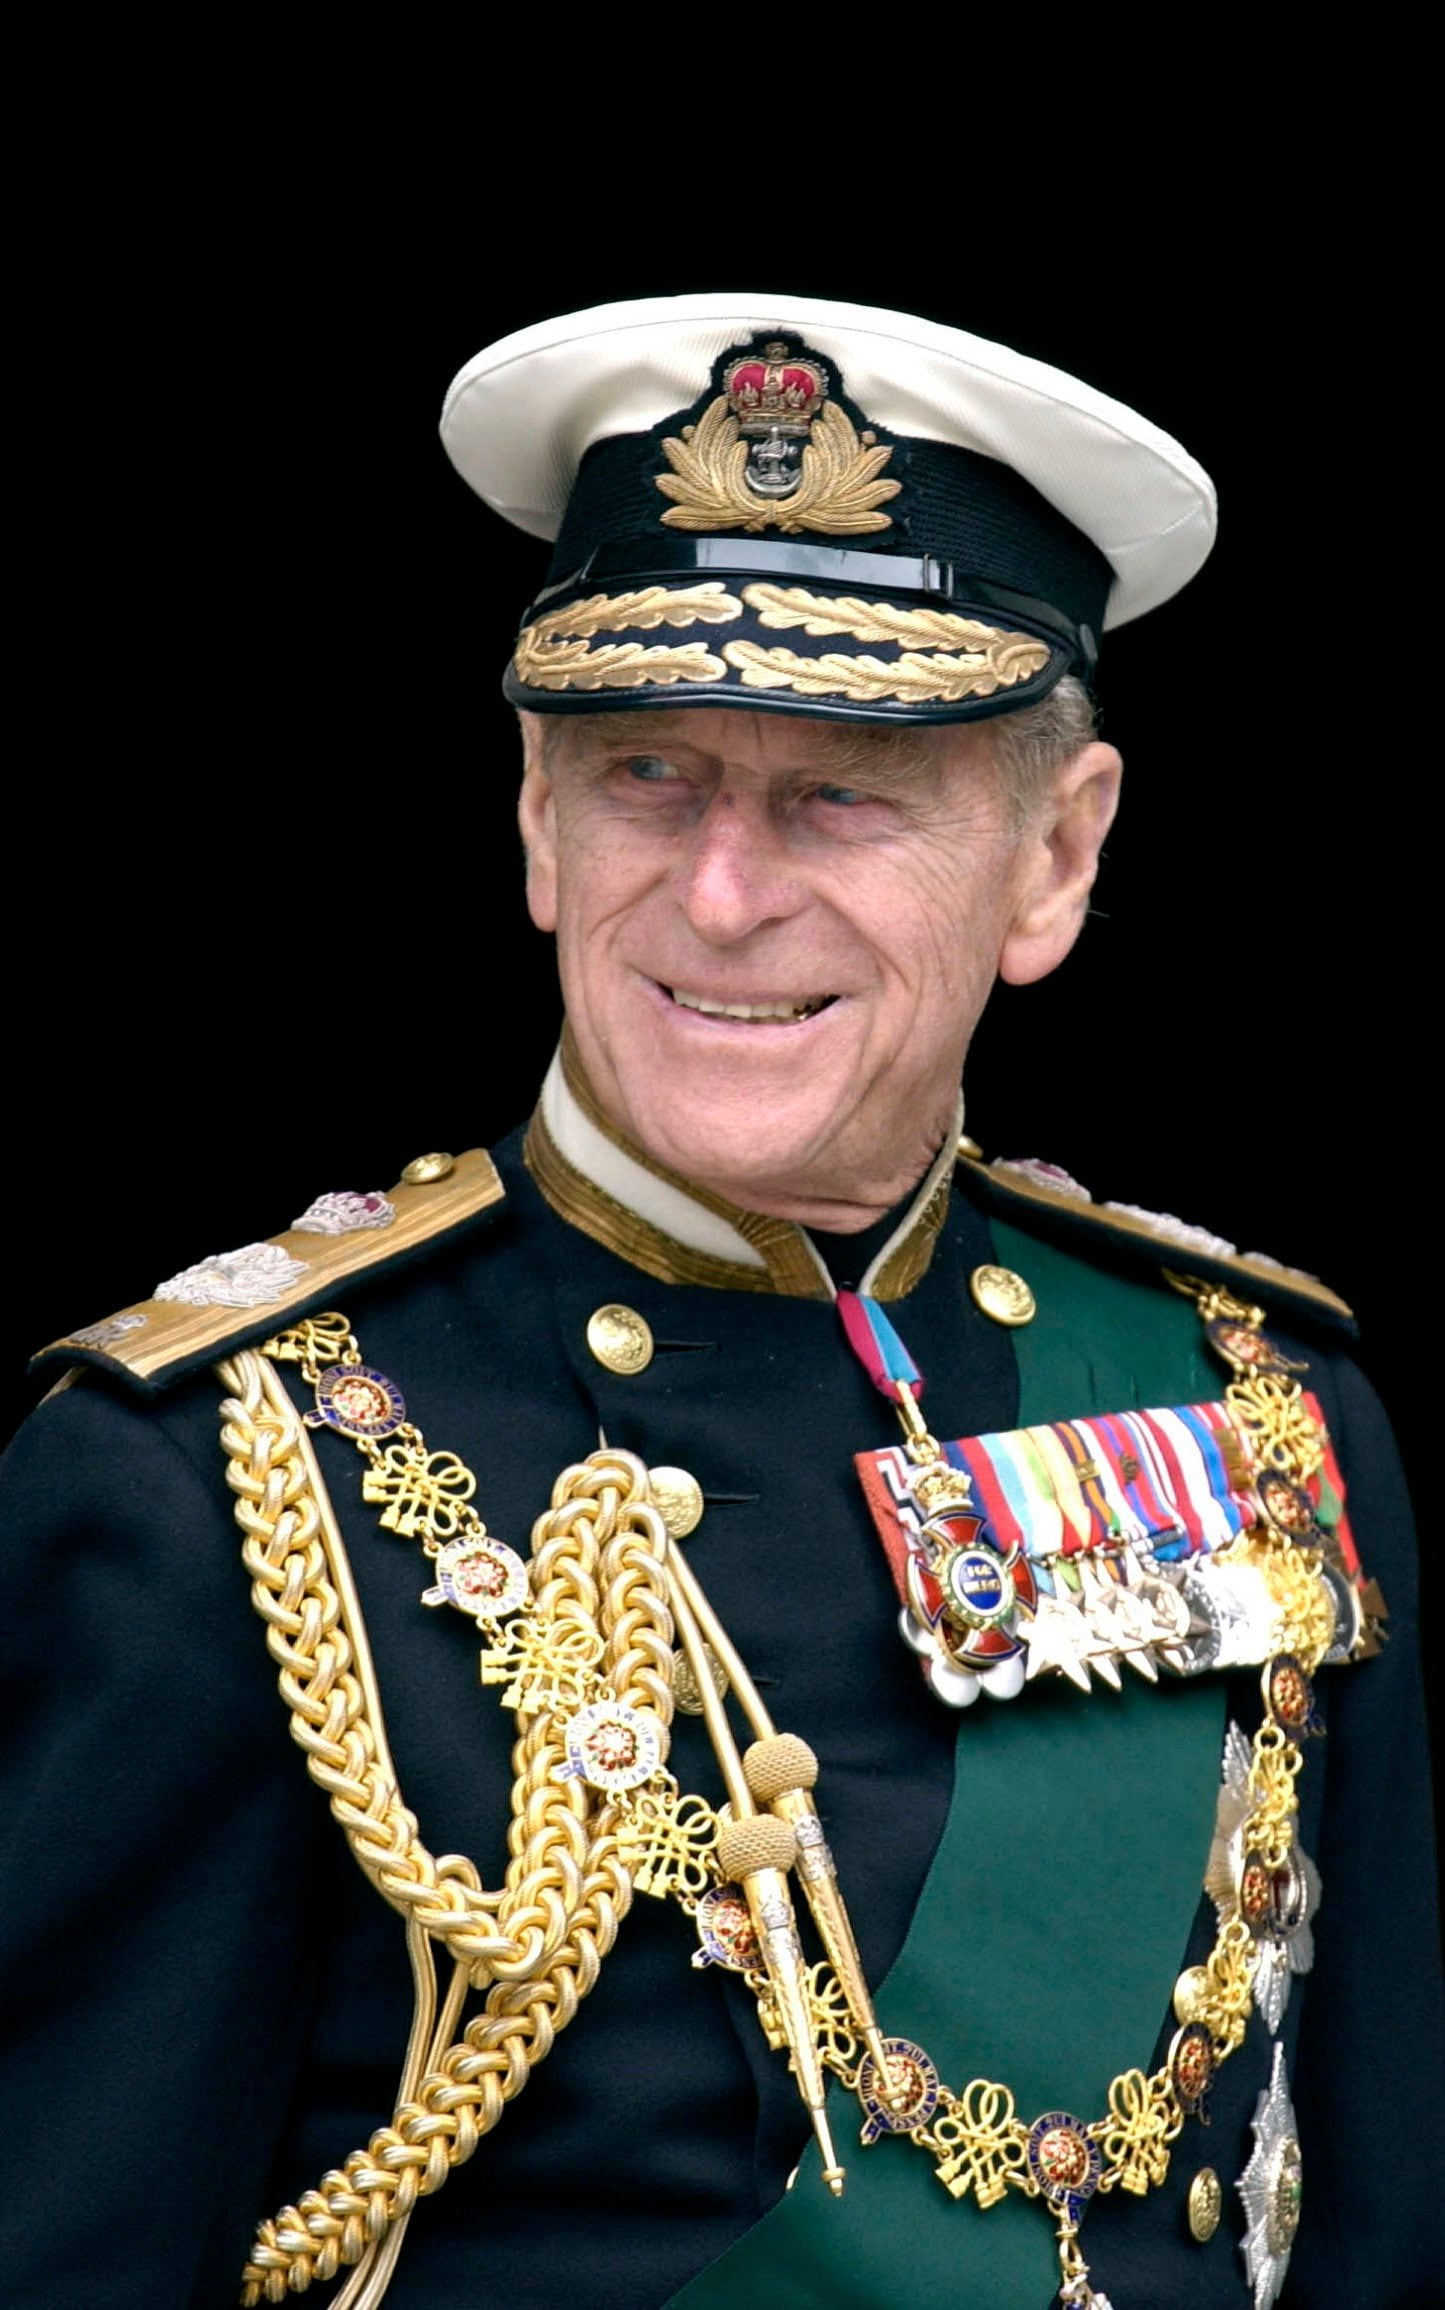 Prince Philip in military uniform with medals, braids and sashes